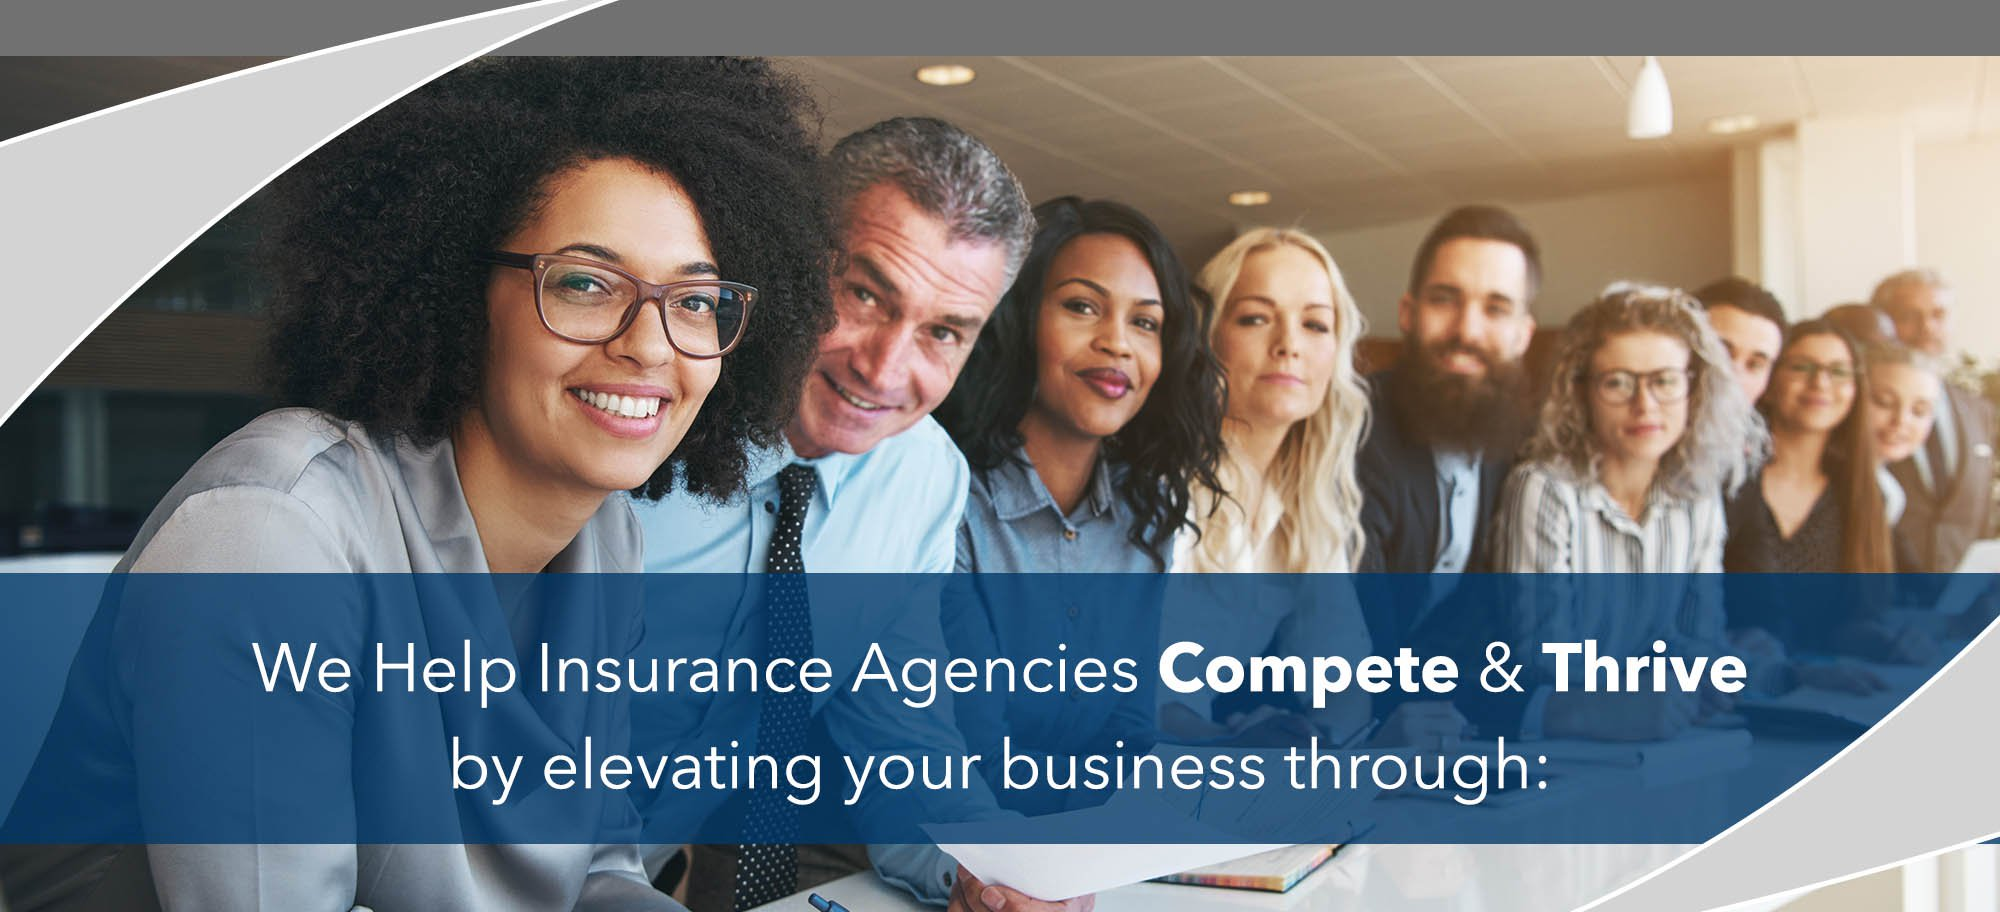 We help insurance agencies compete and thrive by focusing on three main business areas: